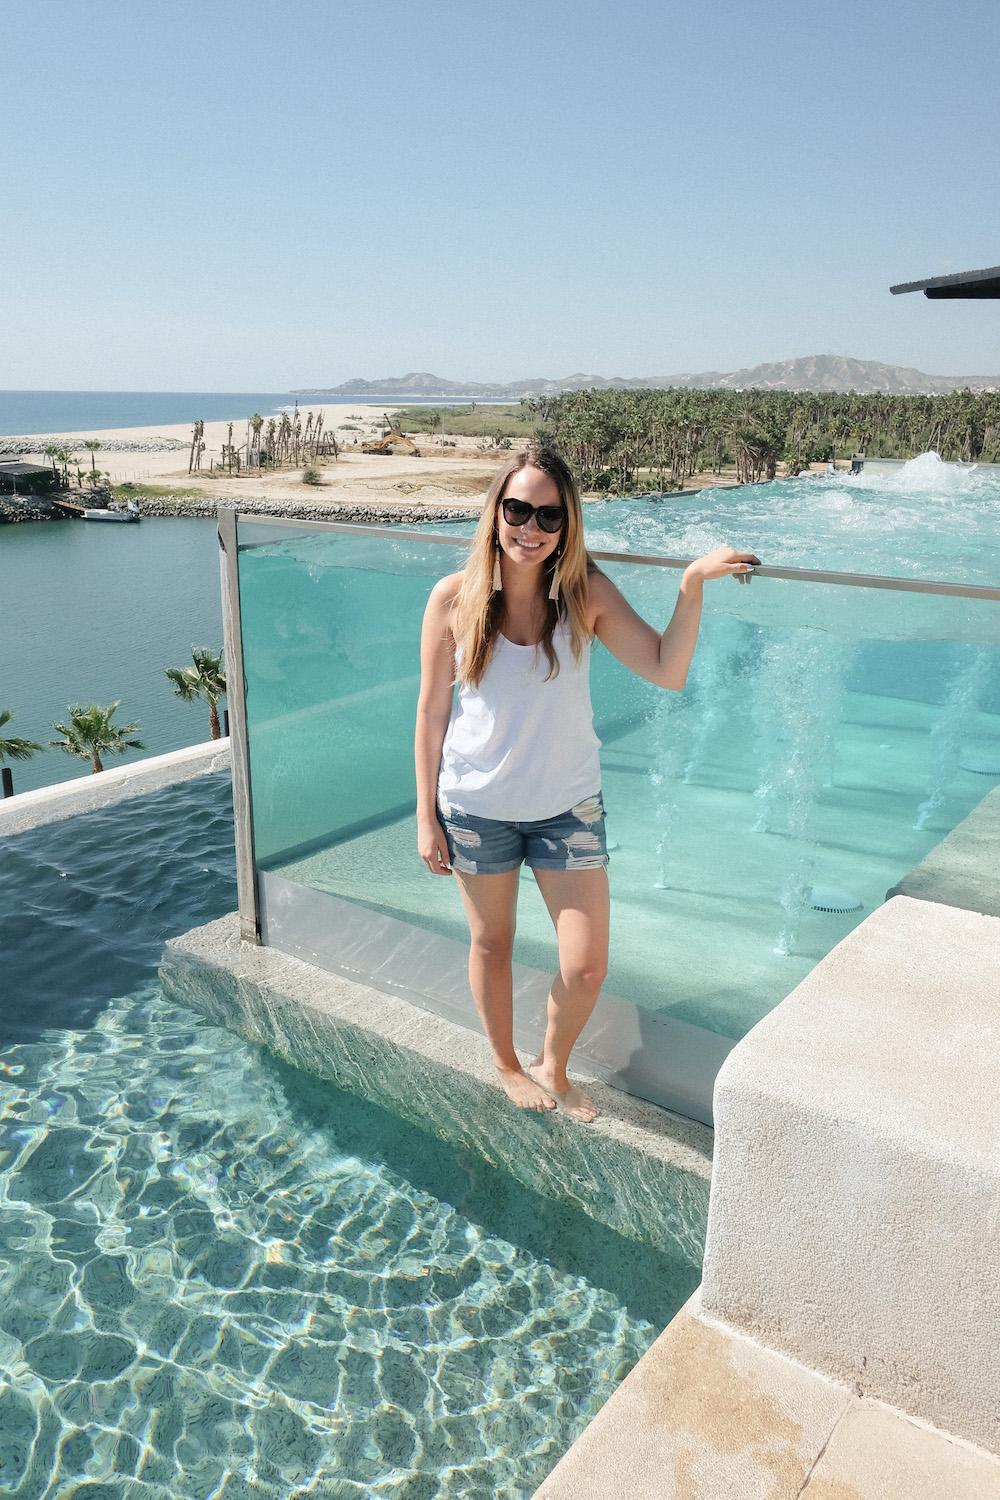 Los Cabos Mexico Travel Diary | Grace Atwood, The Stripe | El Ganzo Hotel Rooftop Views